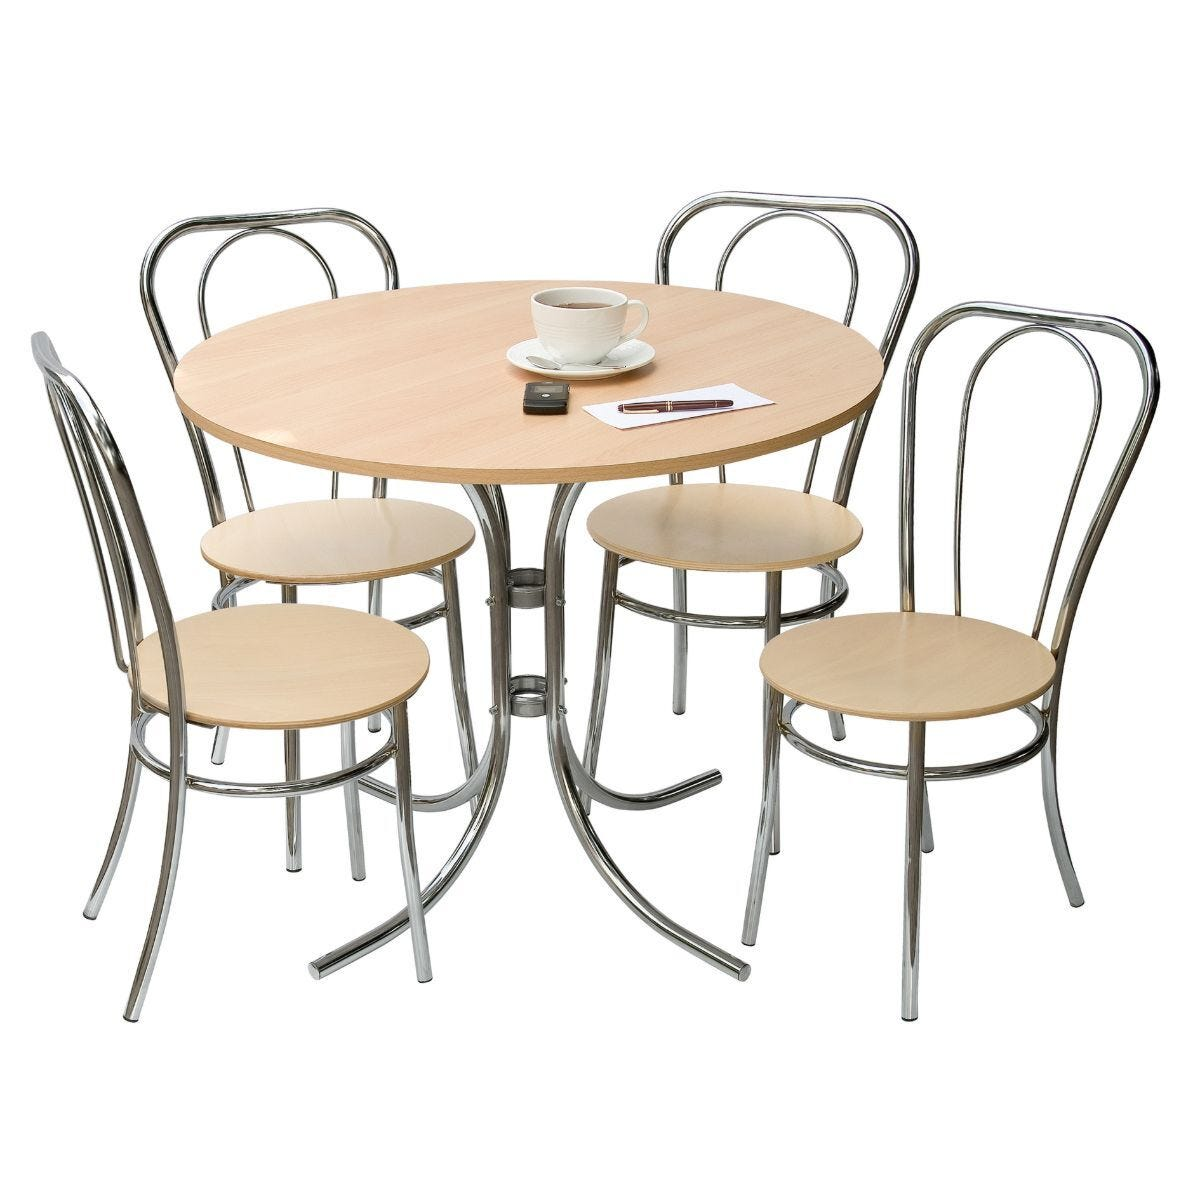 Teknik Office Bistro Set Deluxe Light Wood Table and 4 Chairs